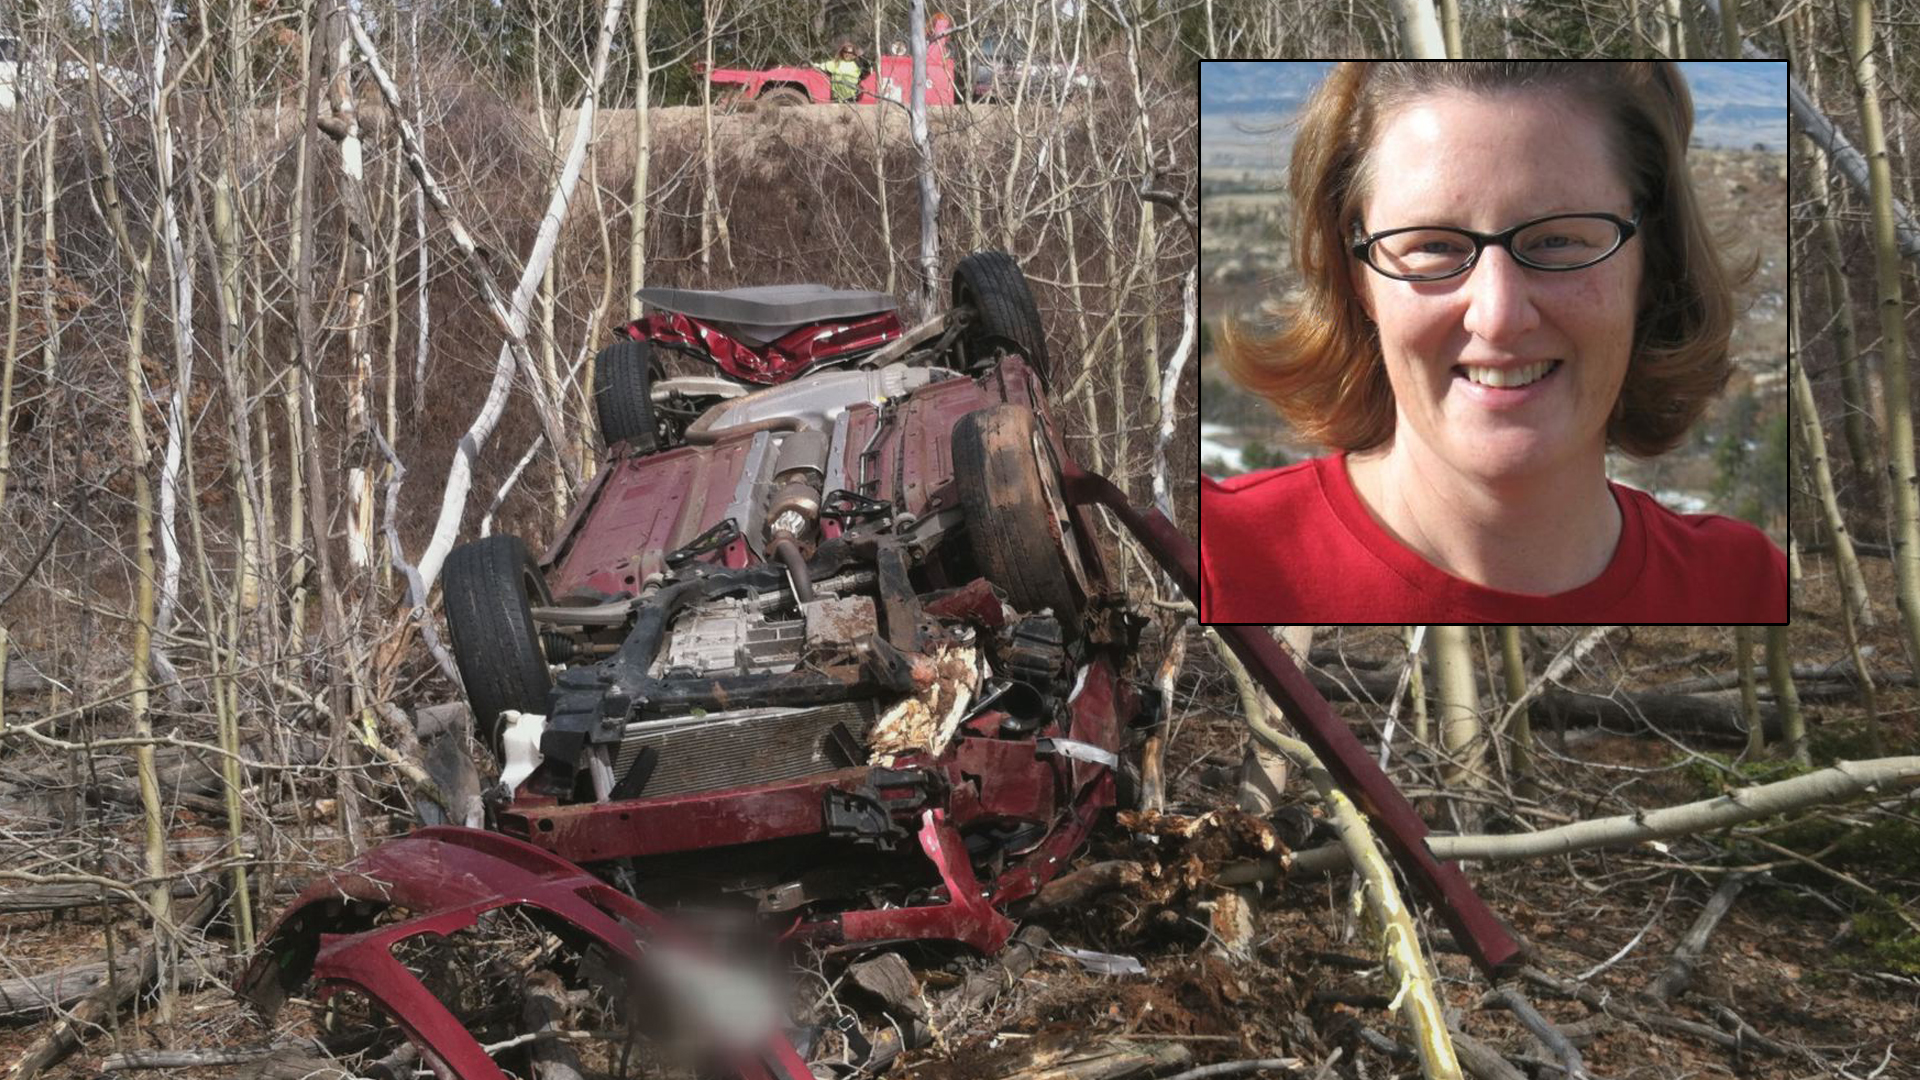 Woman found alive in wrecked car in 'fair' condition